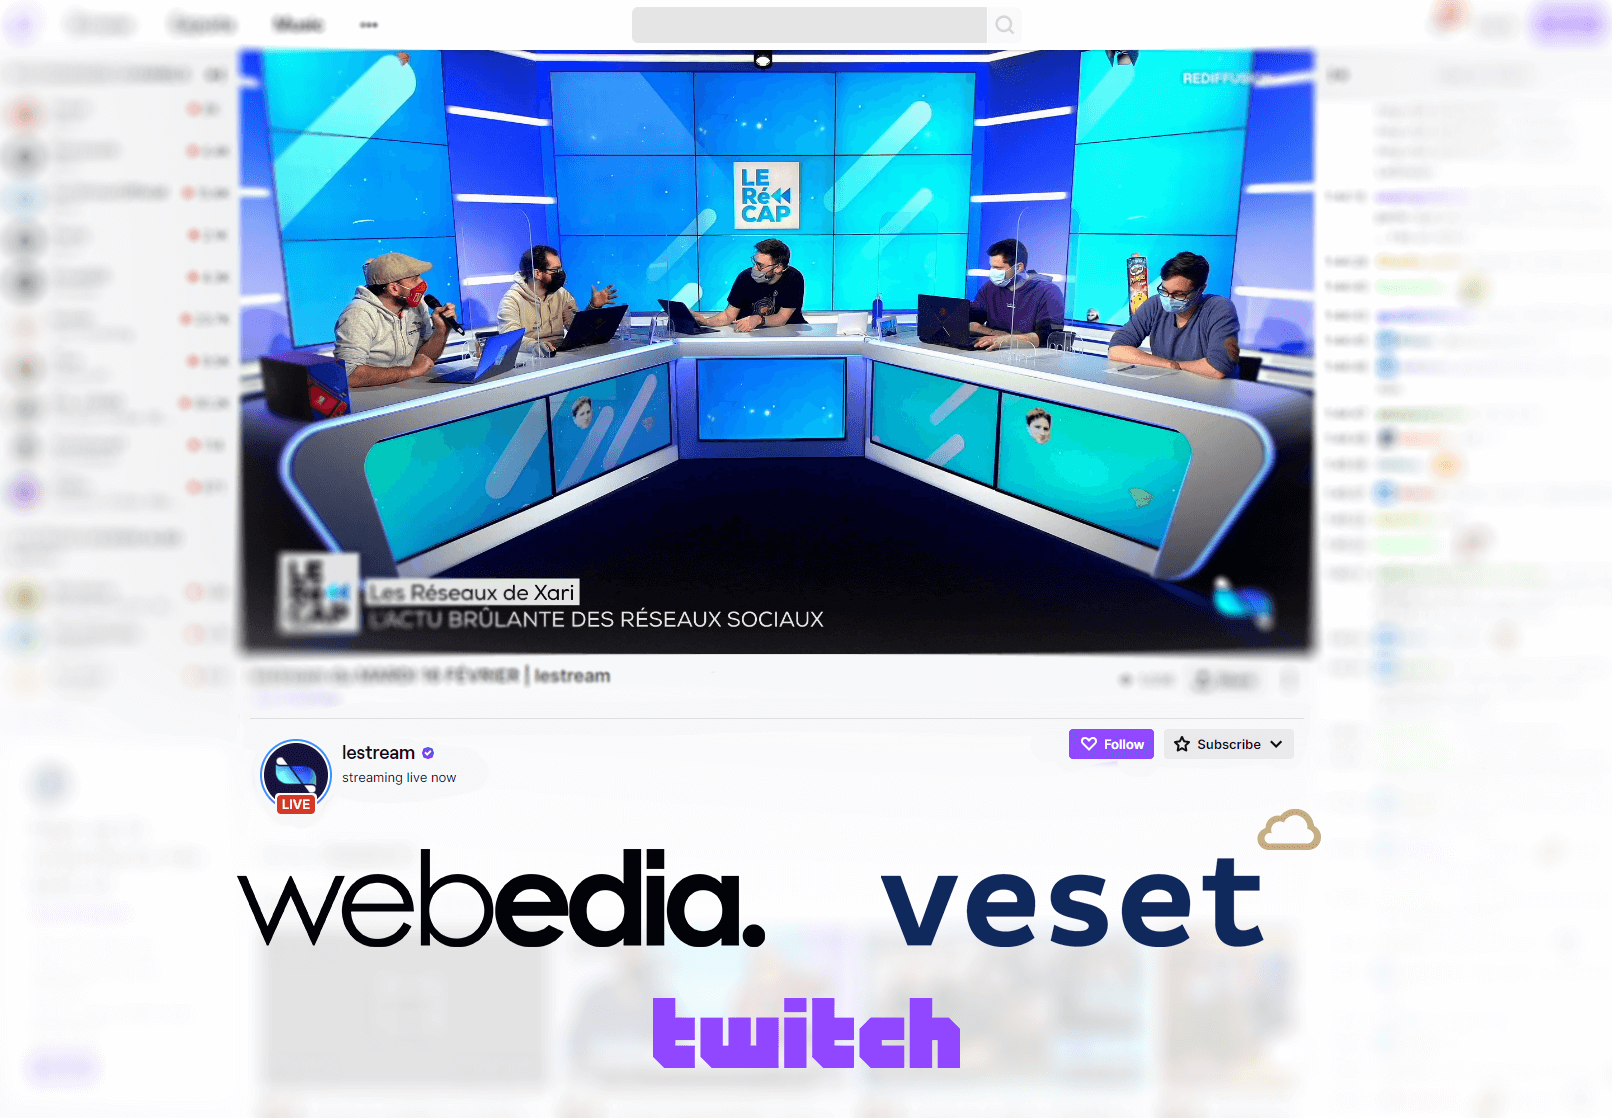 Veset Brings Webedia's Popular Gaming Channel on Twitch